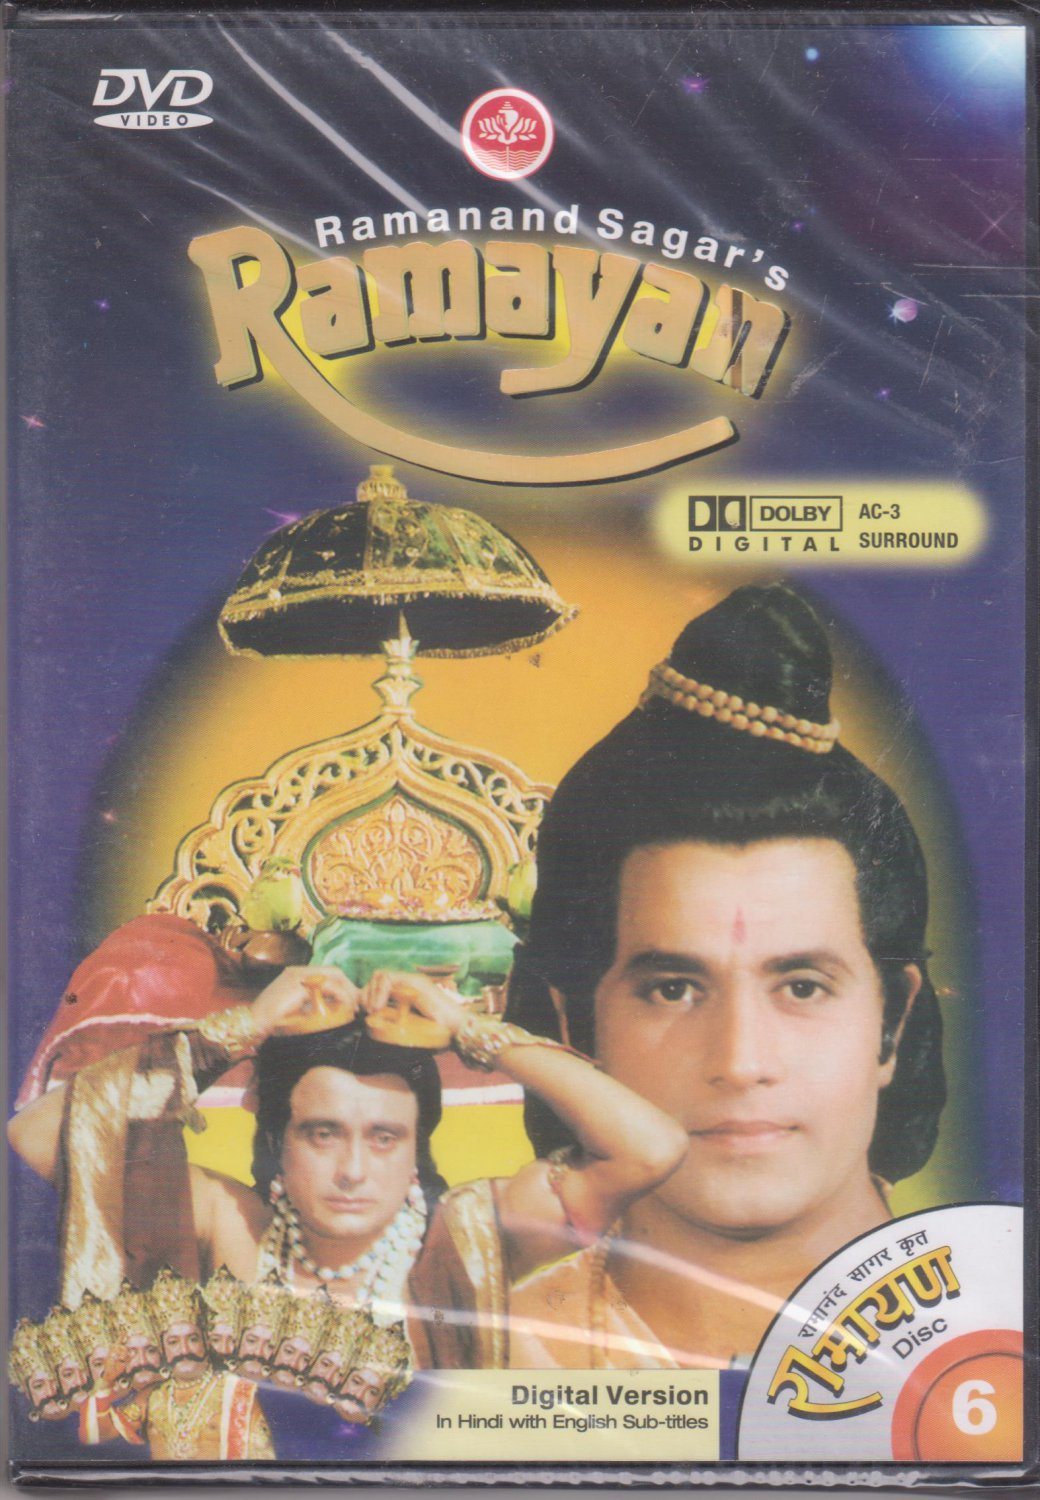 Ramayan - Disc 6 - Episode 24 to 28  - ramanand Sahar's  [Dvd]  1st edition Released